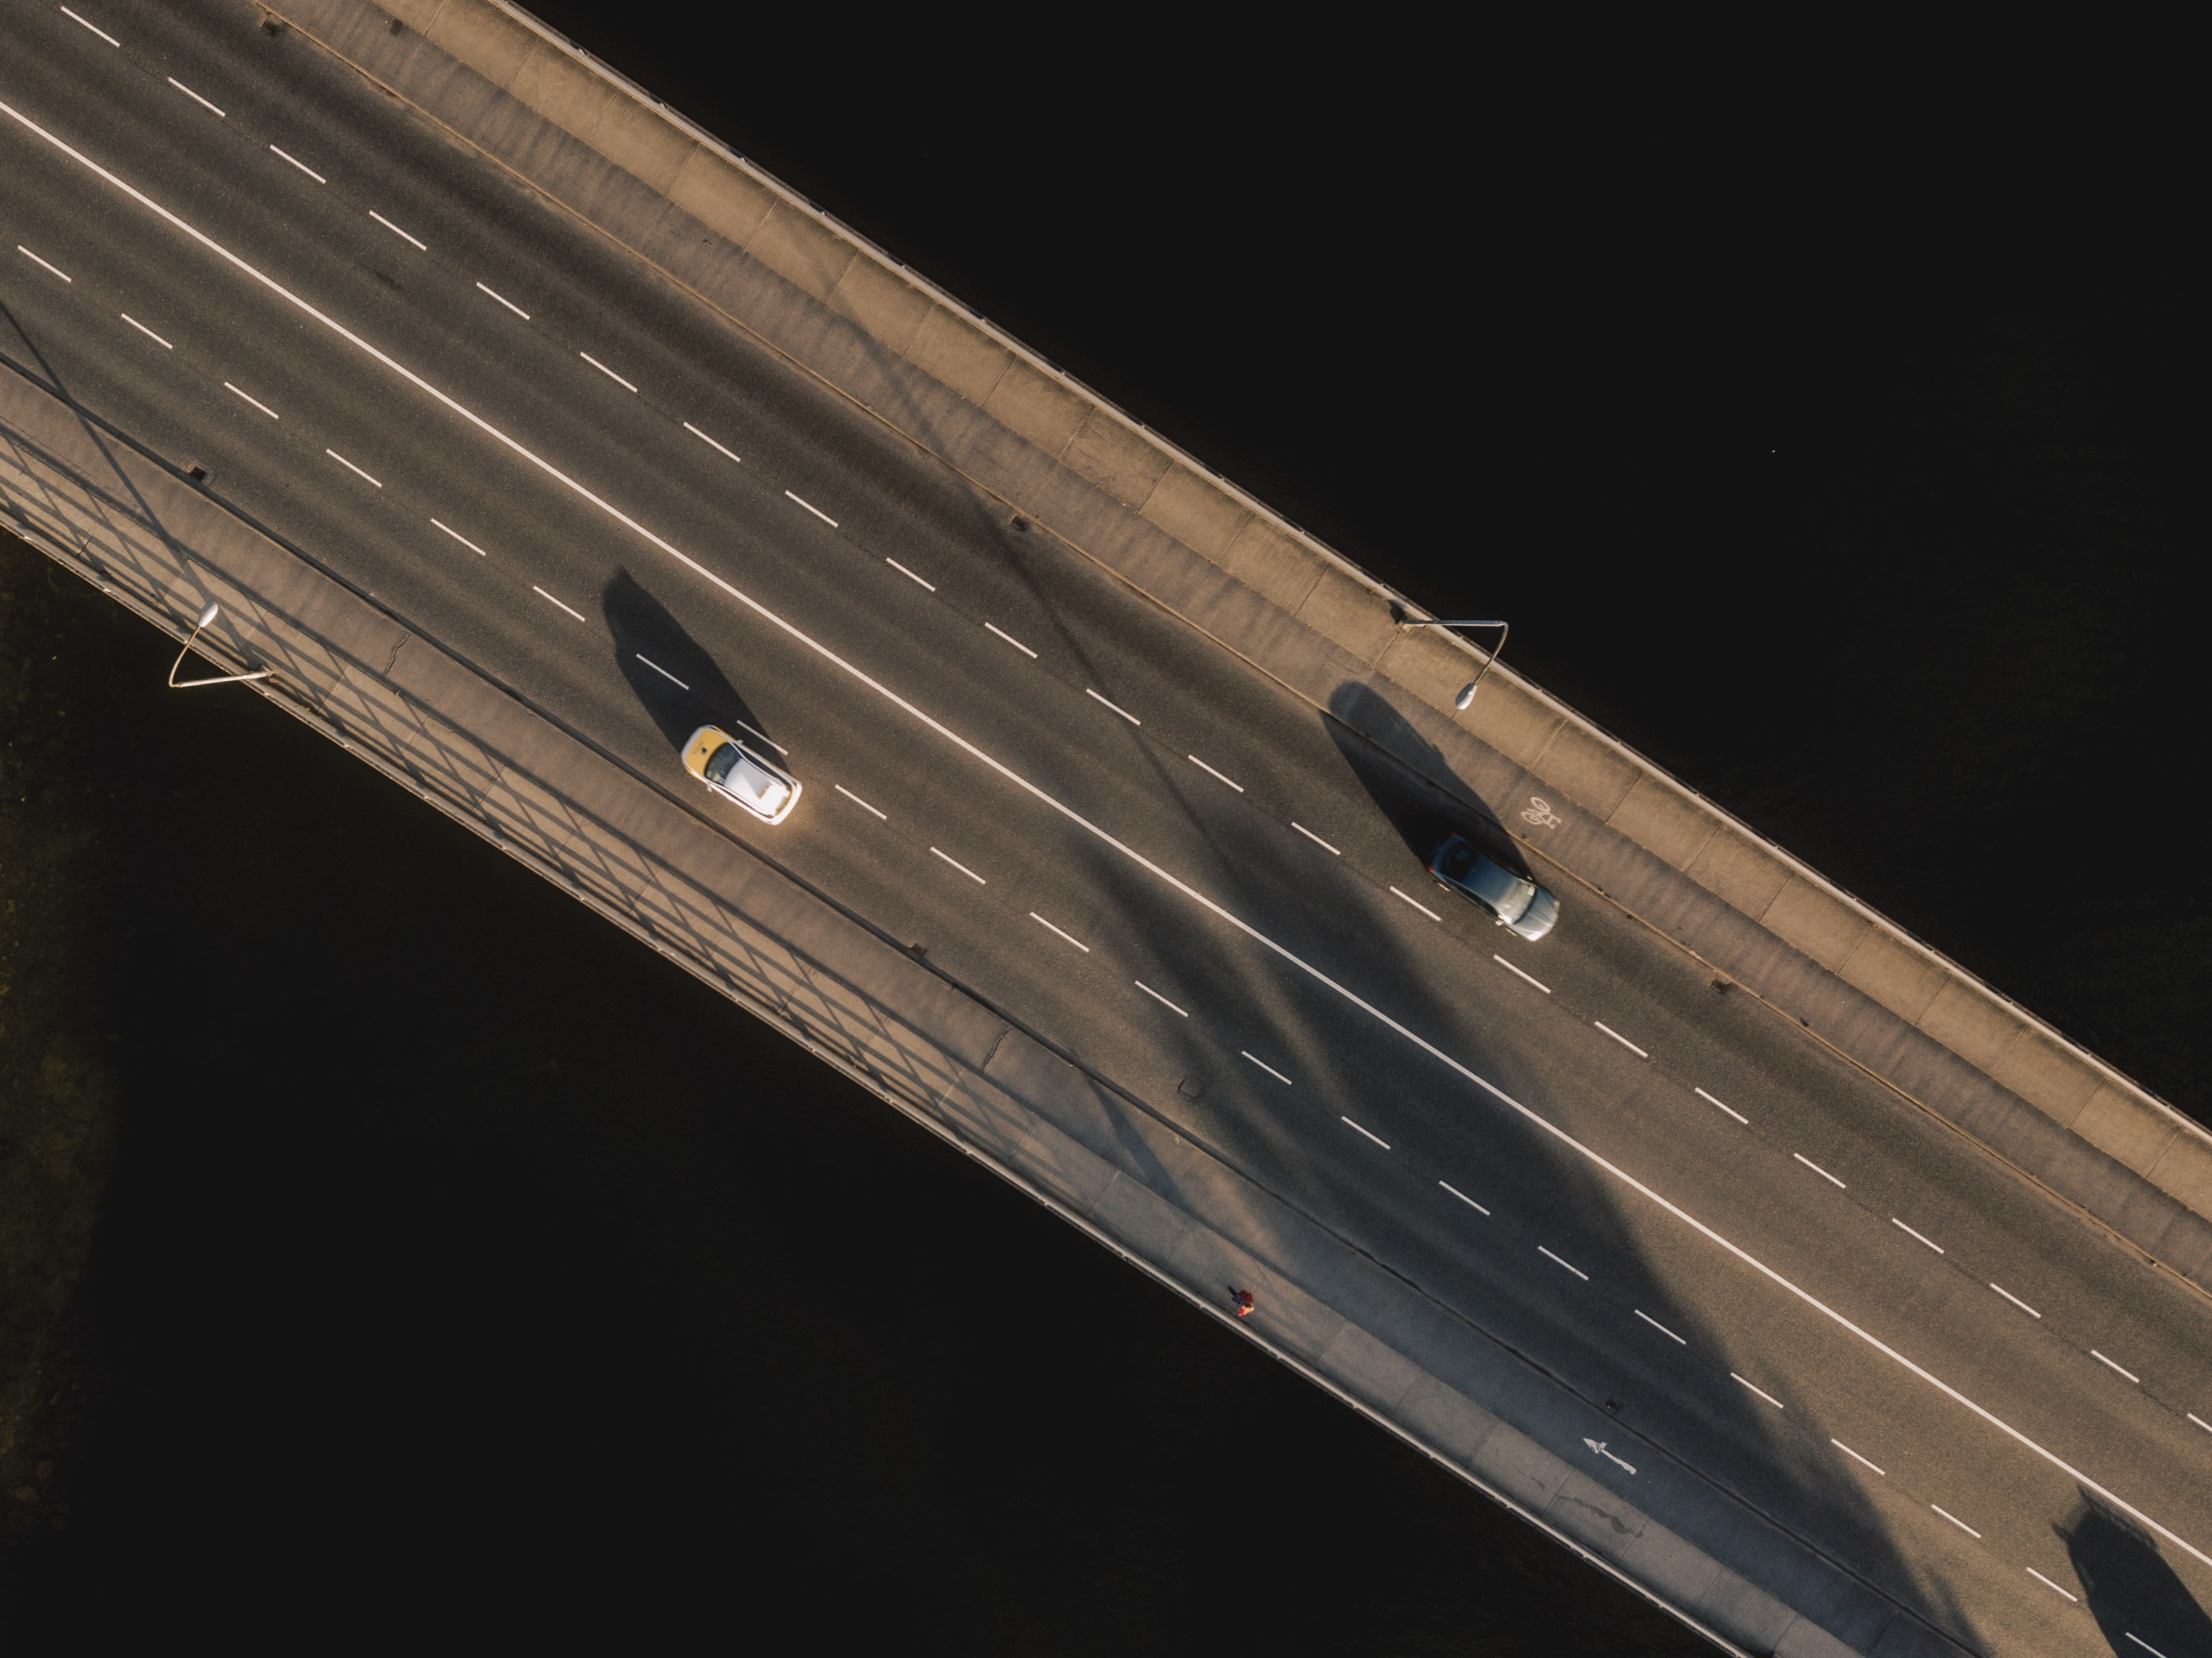 aerial photo of cars on road